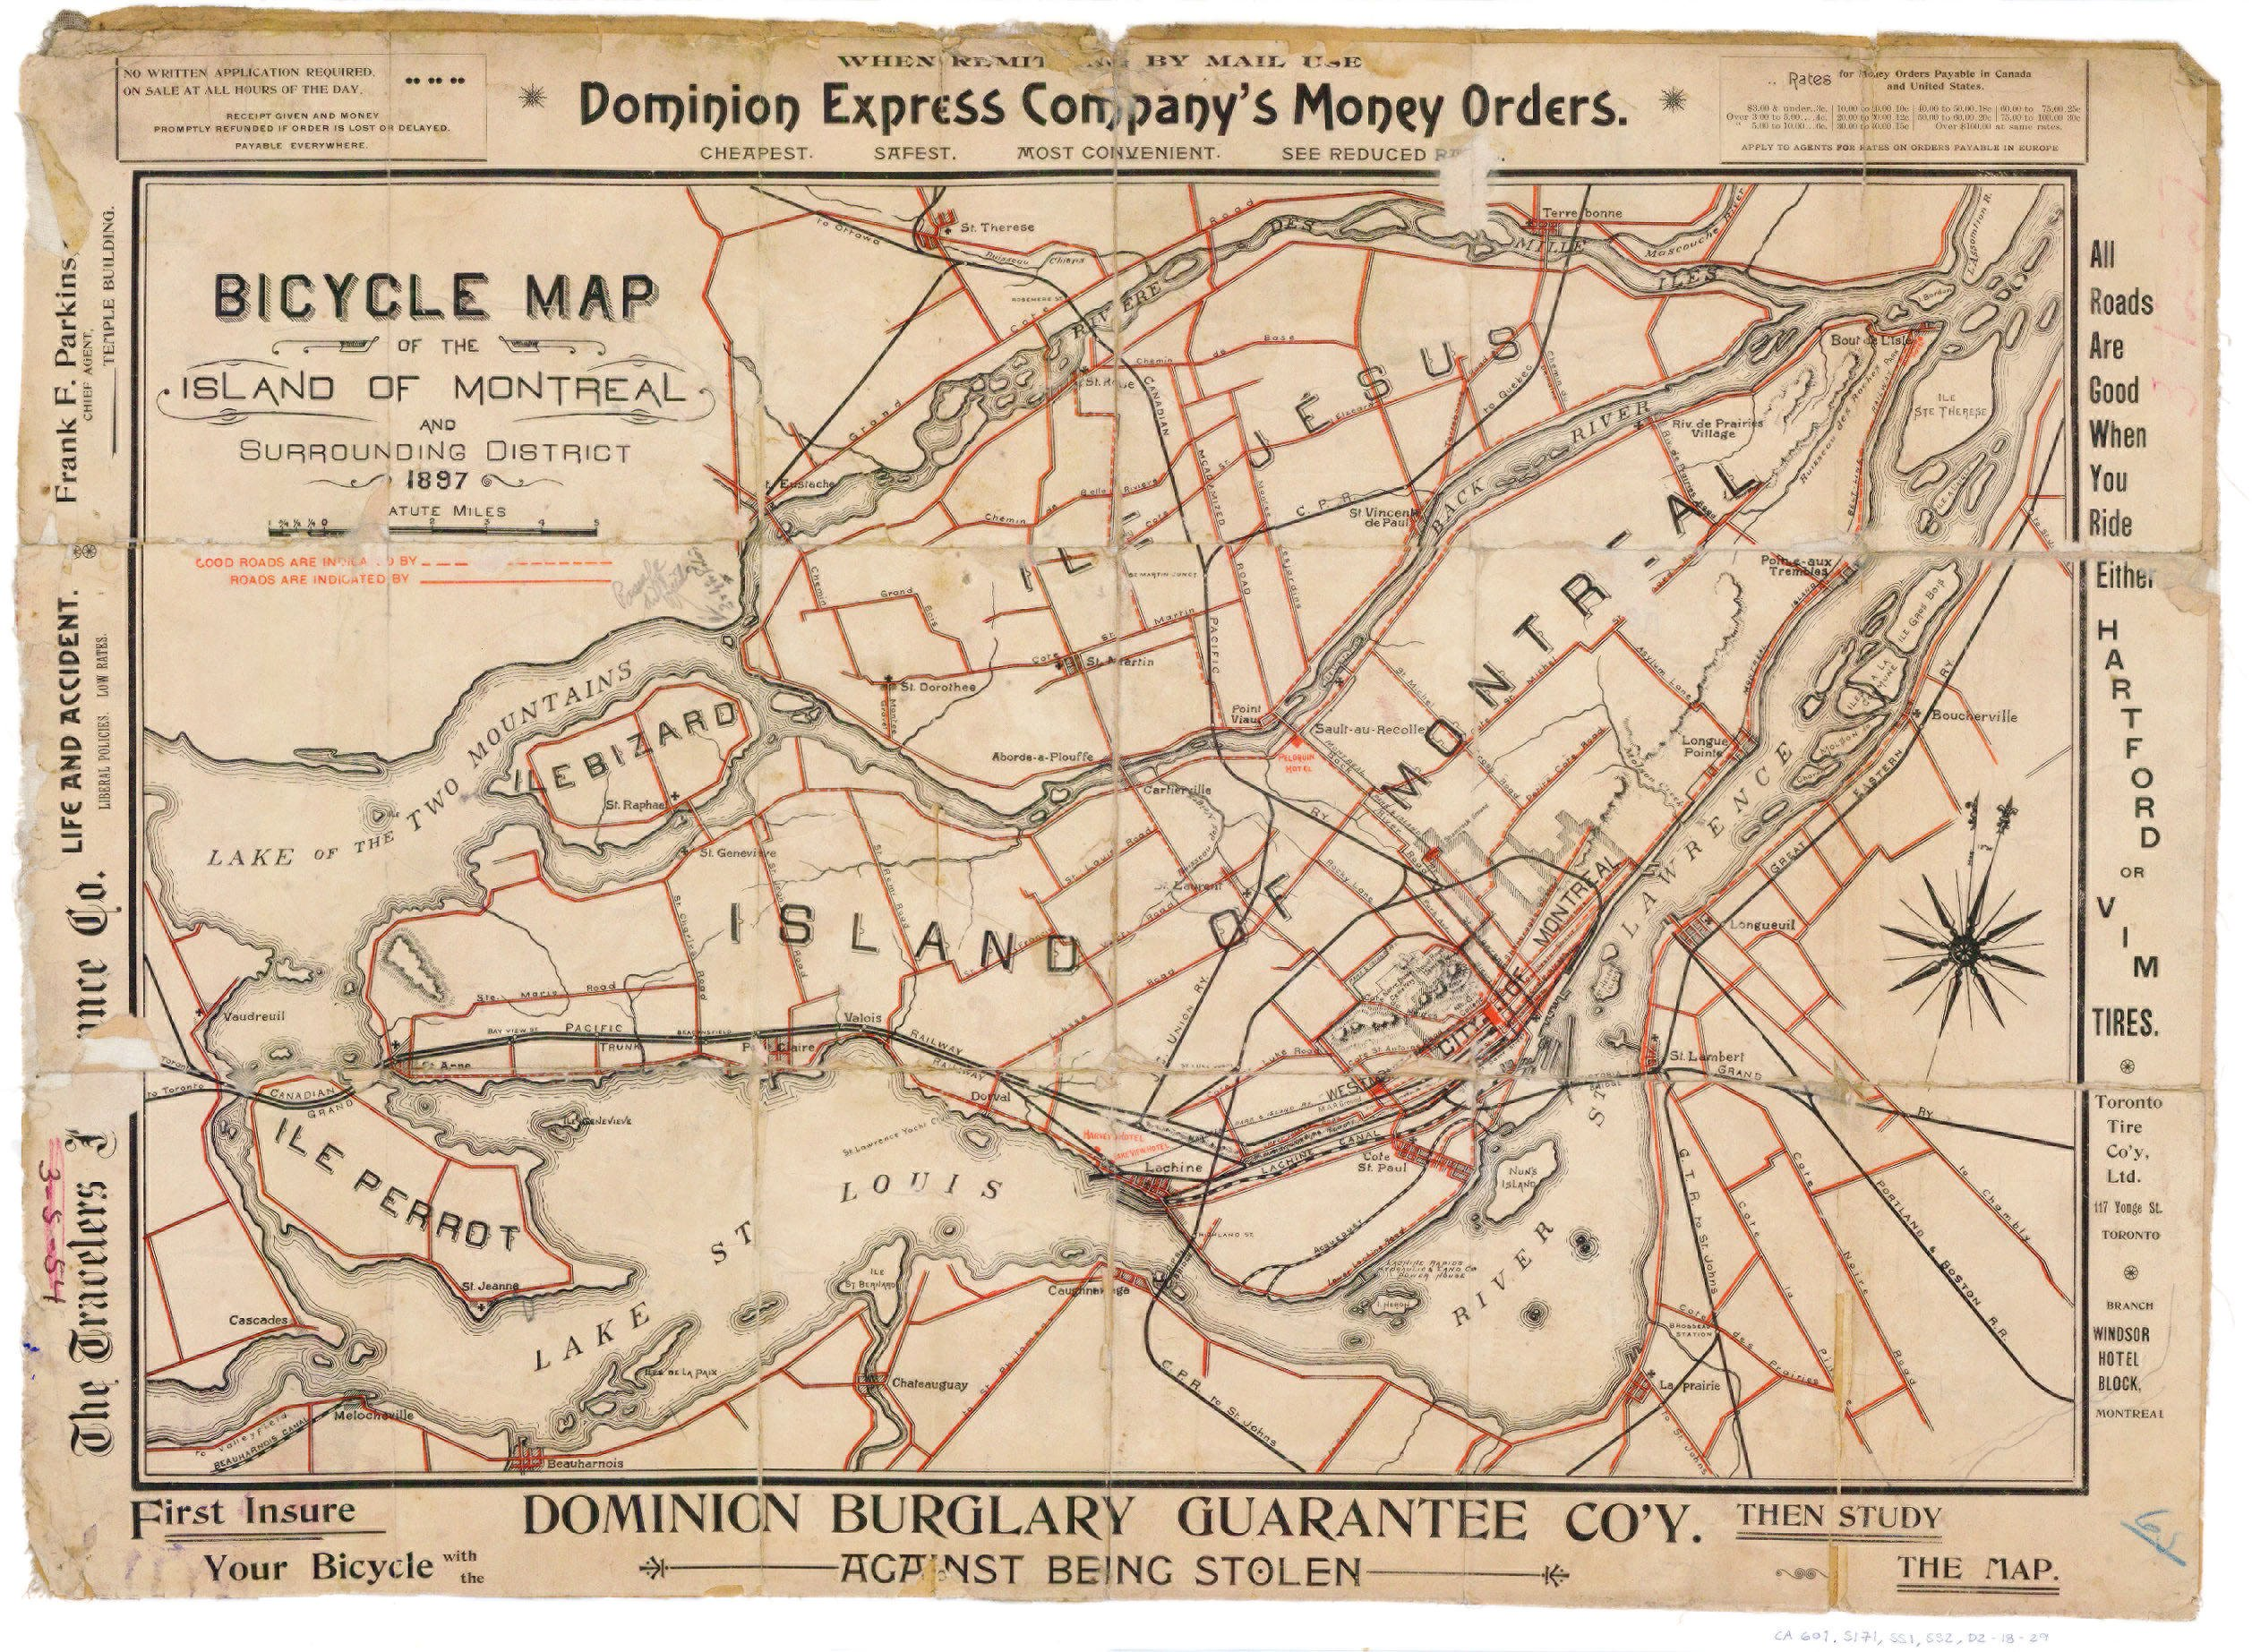 Montreal bicycle map from 1897